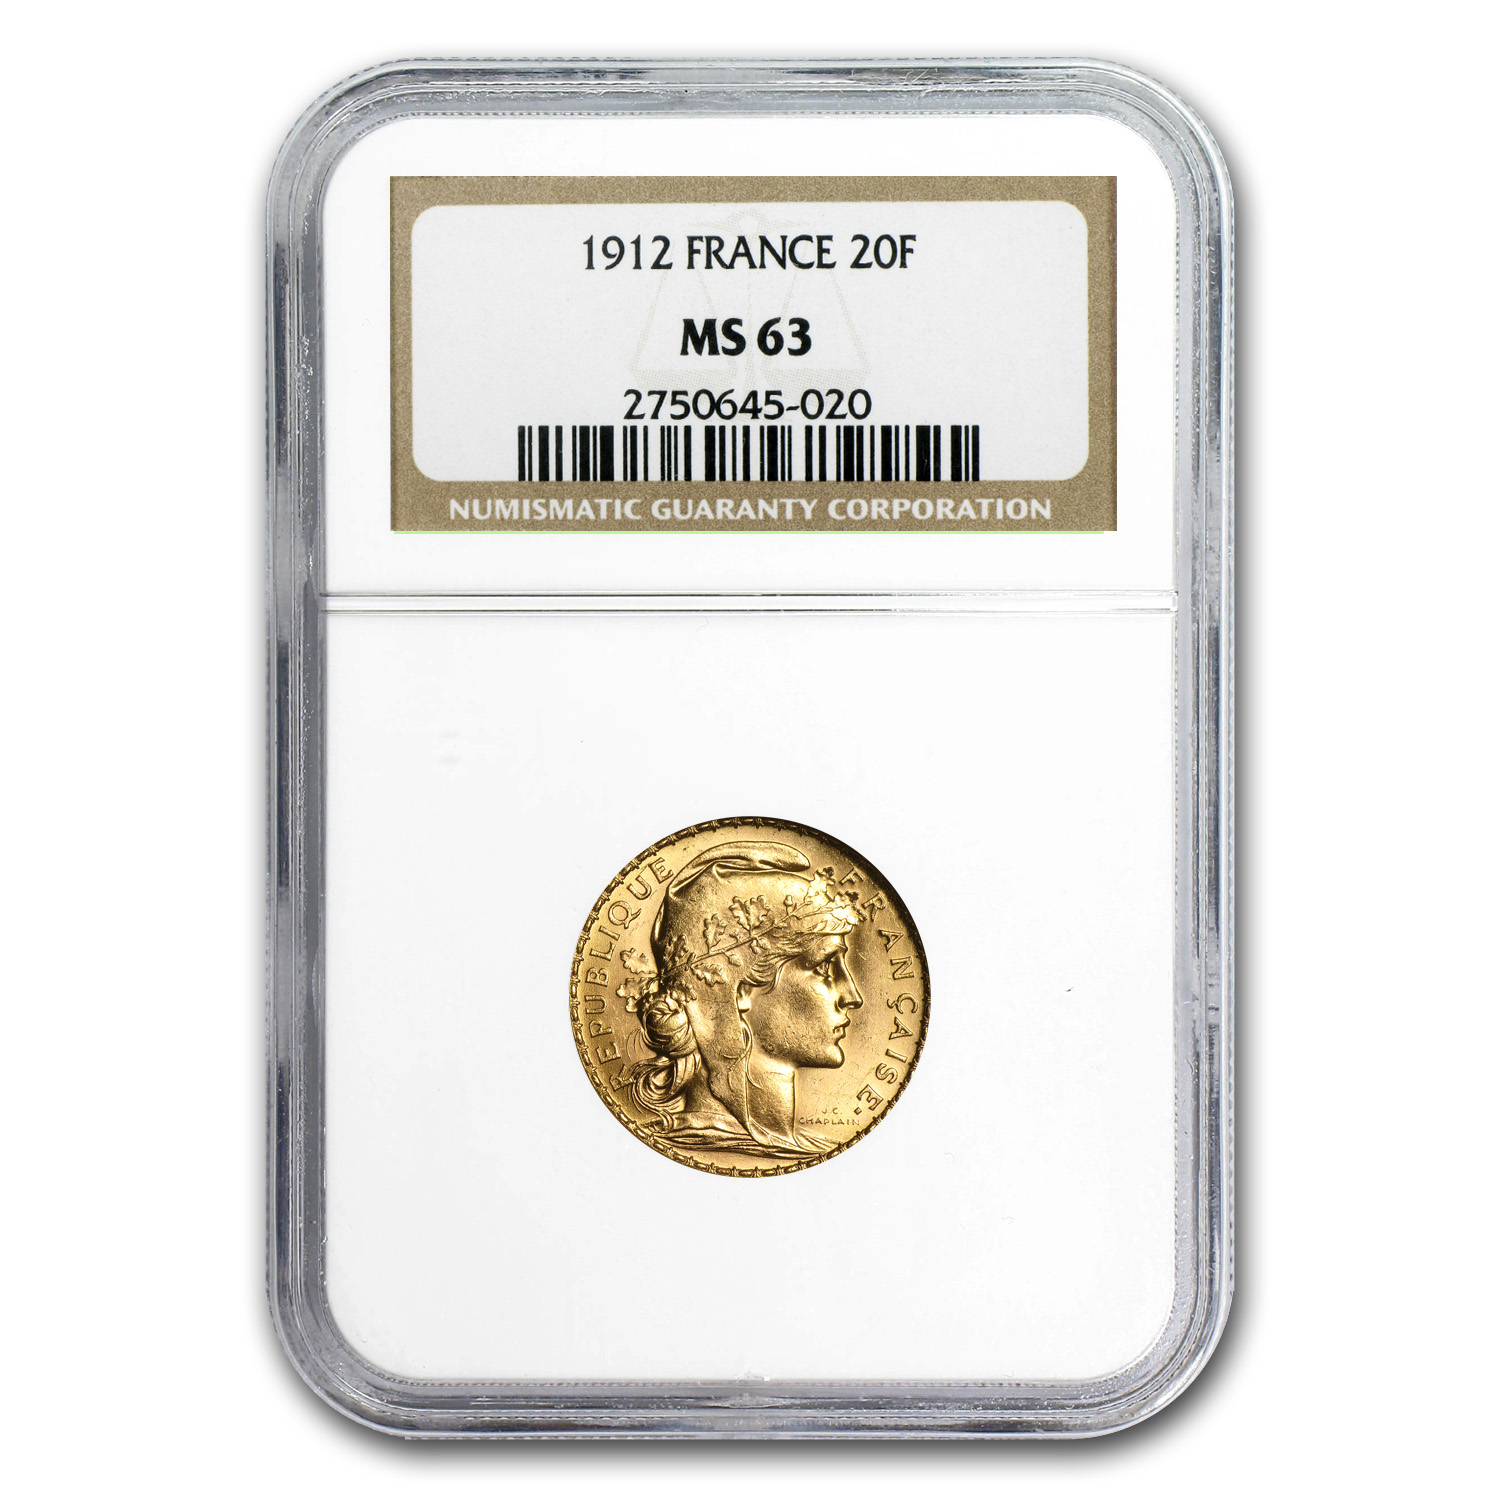 1899-1914 France Gold 20 Francs Rooster MS-63 NGC